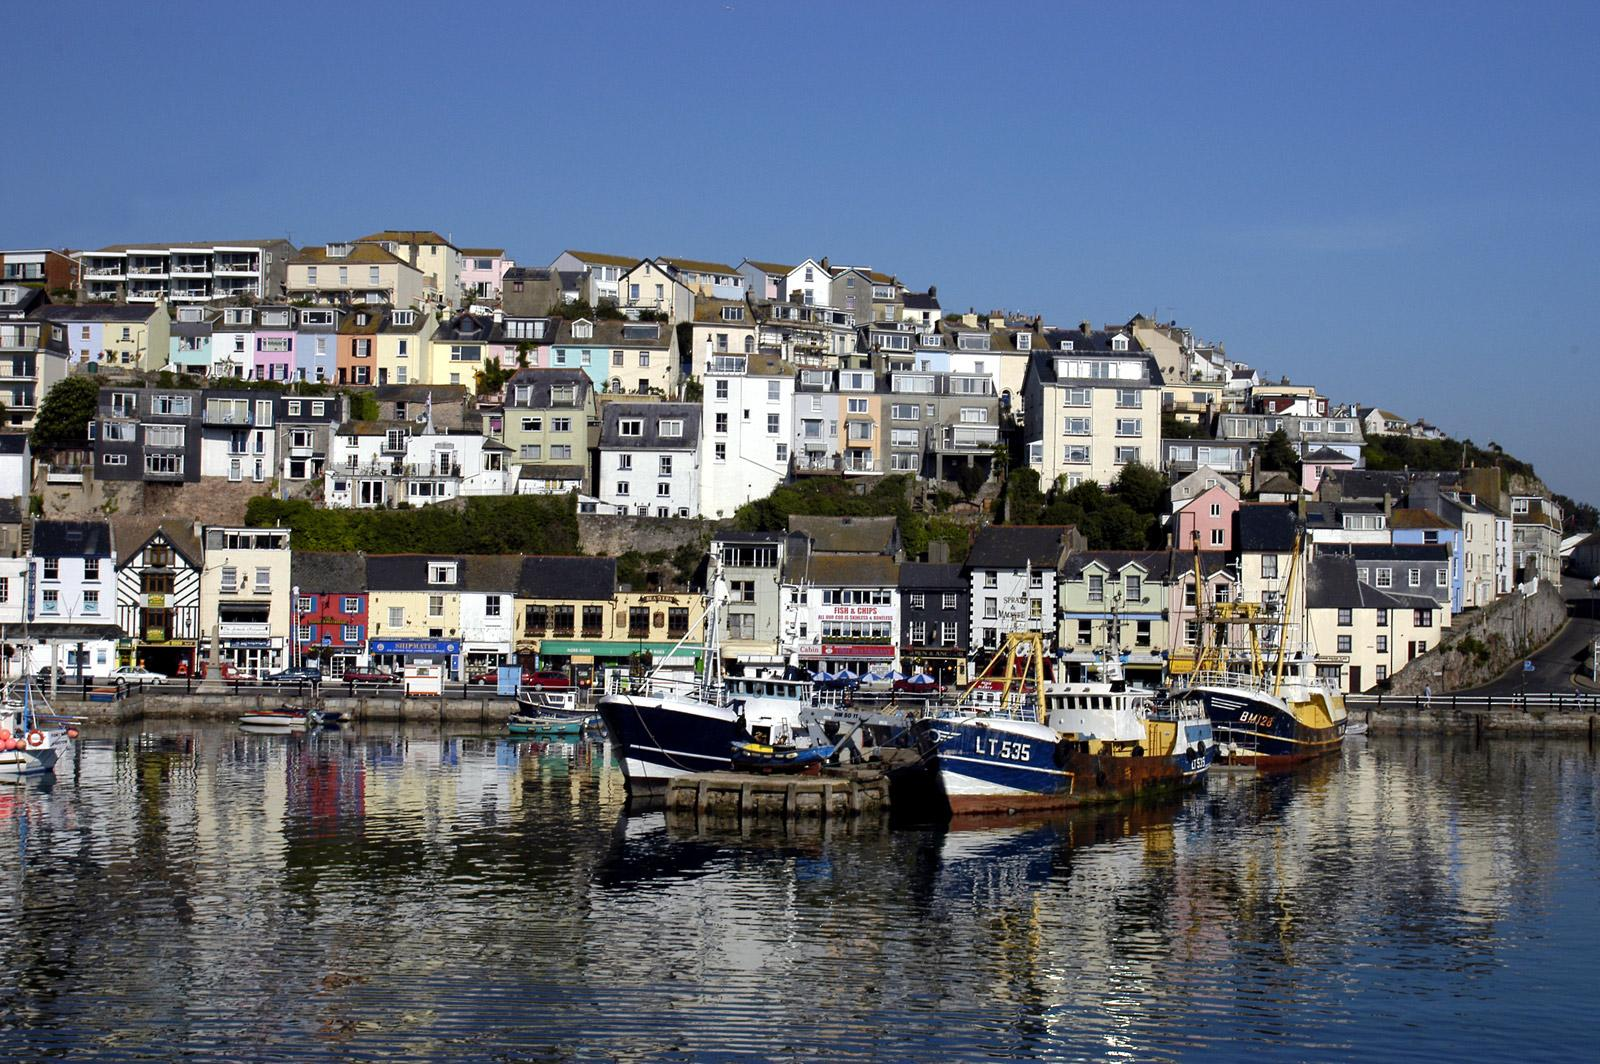 Top 10 Ten Guide To South Devon Your Top 10 Guide To